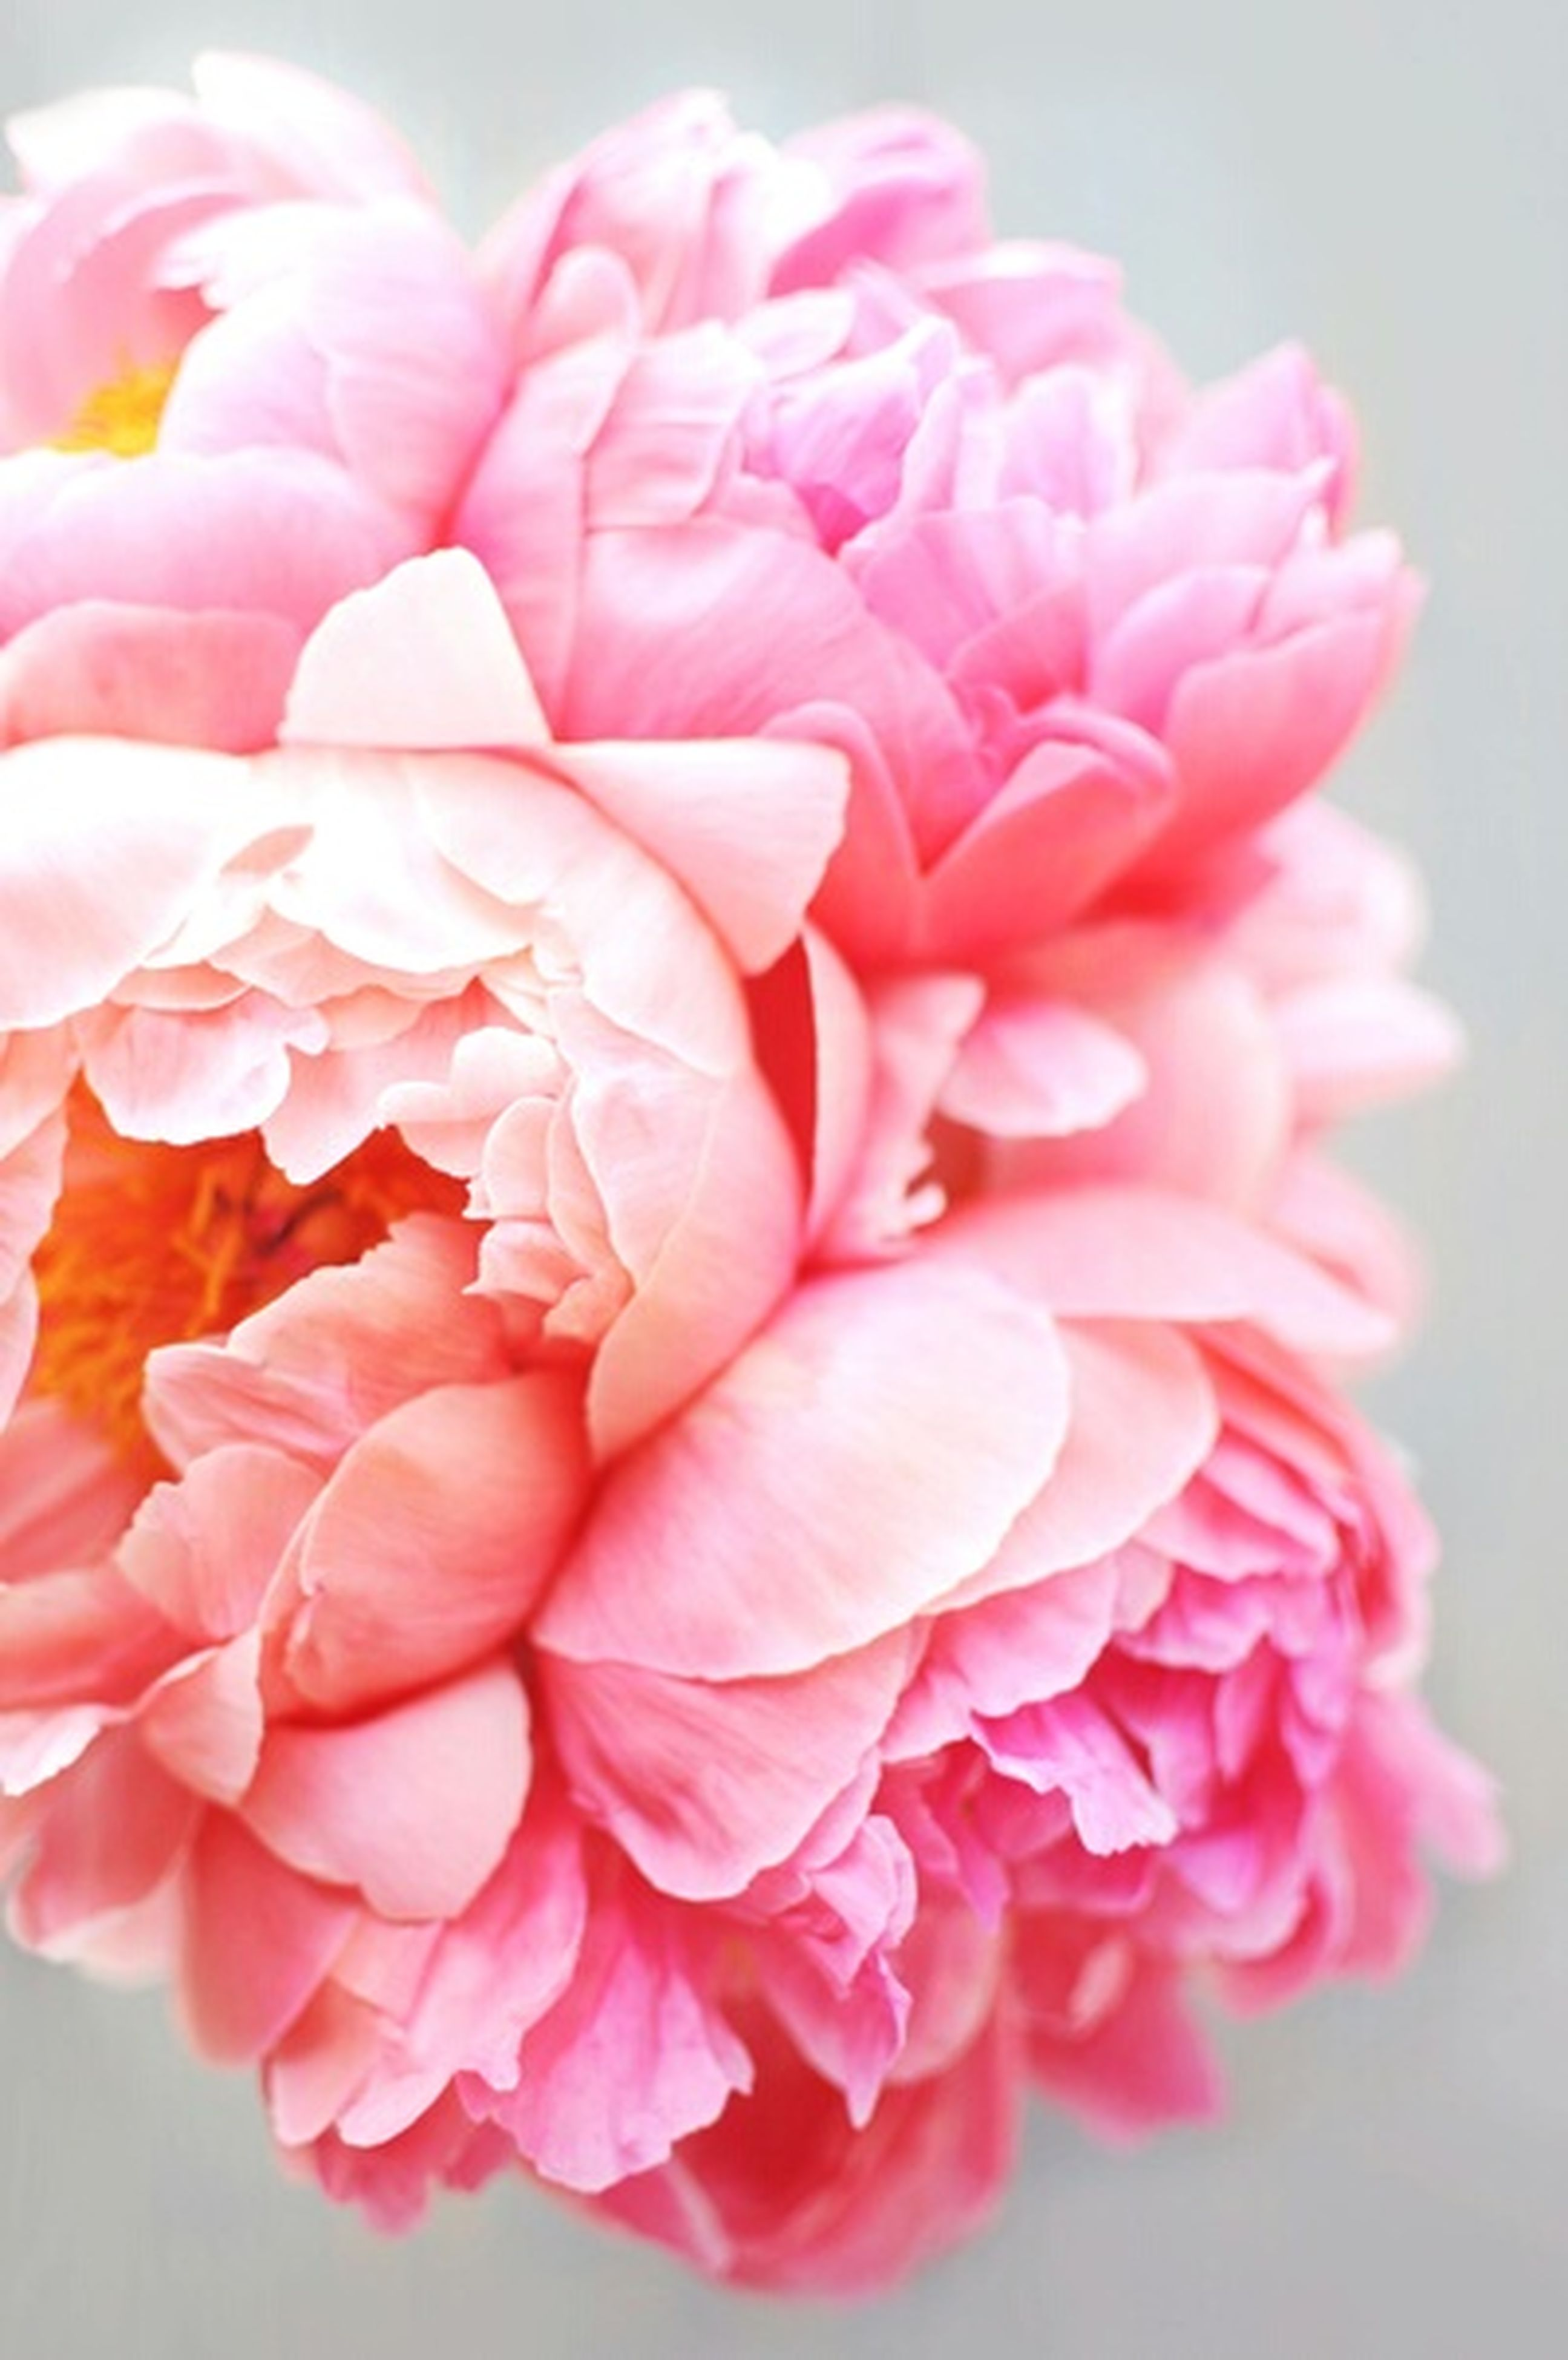 flower, petal, freshness, fragility, flower head, indoors, close-up, pink color, beauty in nature, rose - flower, nature, focus on foreground, red, bunch of flowers, blooming, vase, pink, growth, studio shot, white color